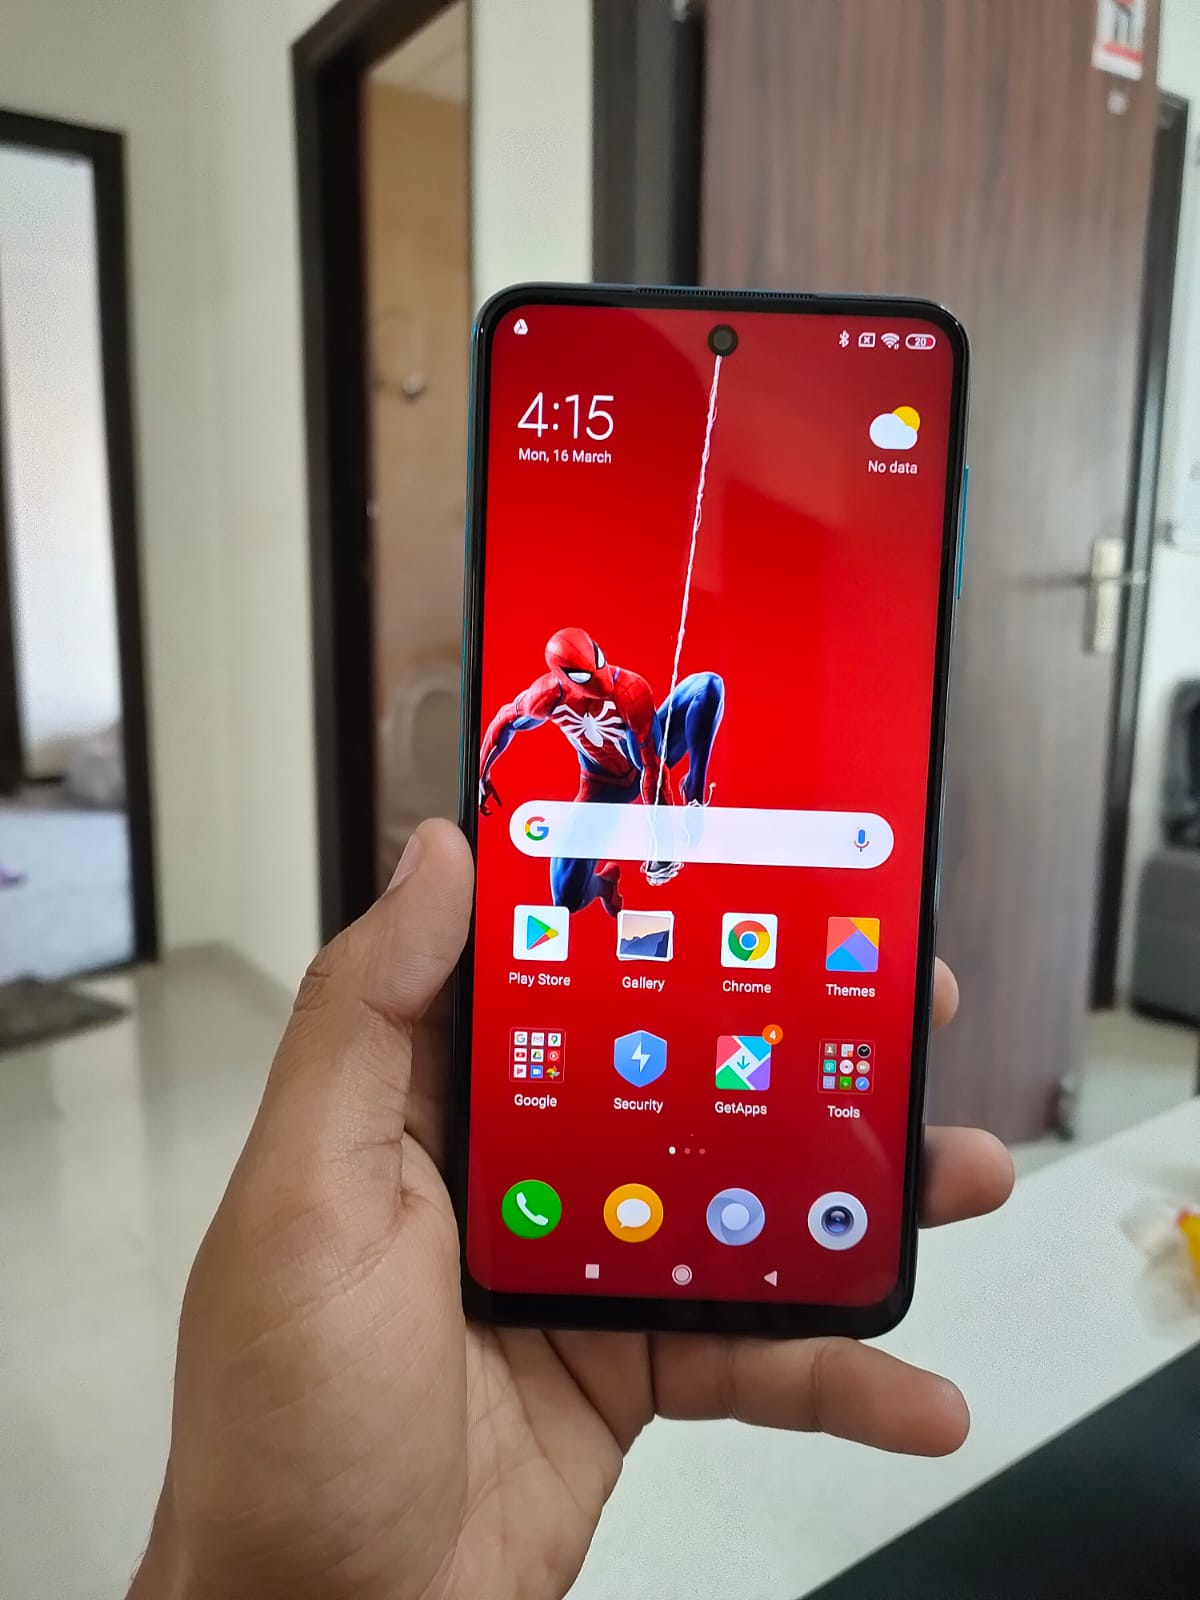 Burnerbits On Twitter Download Redmi Note 9 Pro Max Punch Hole Wallpapers Https T Co 9wayslepgj Redminote9promax Redminote9 Redminote Redmiindia Https T Co Hgcl1gvtqy